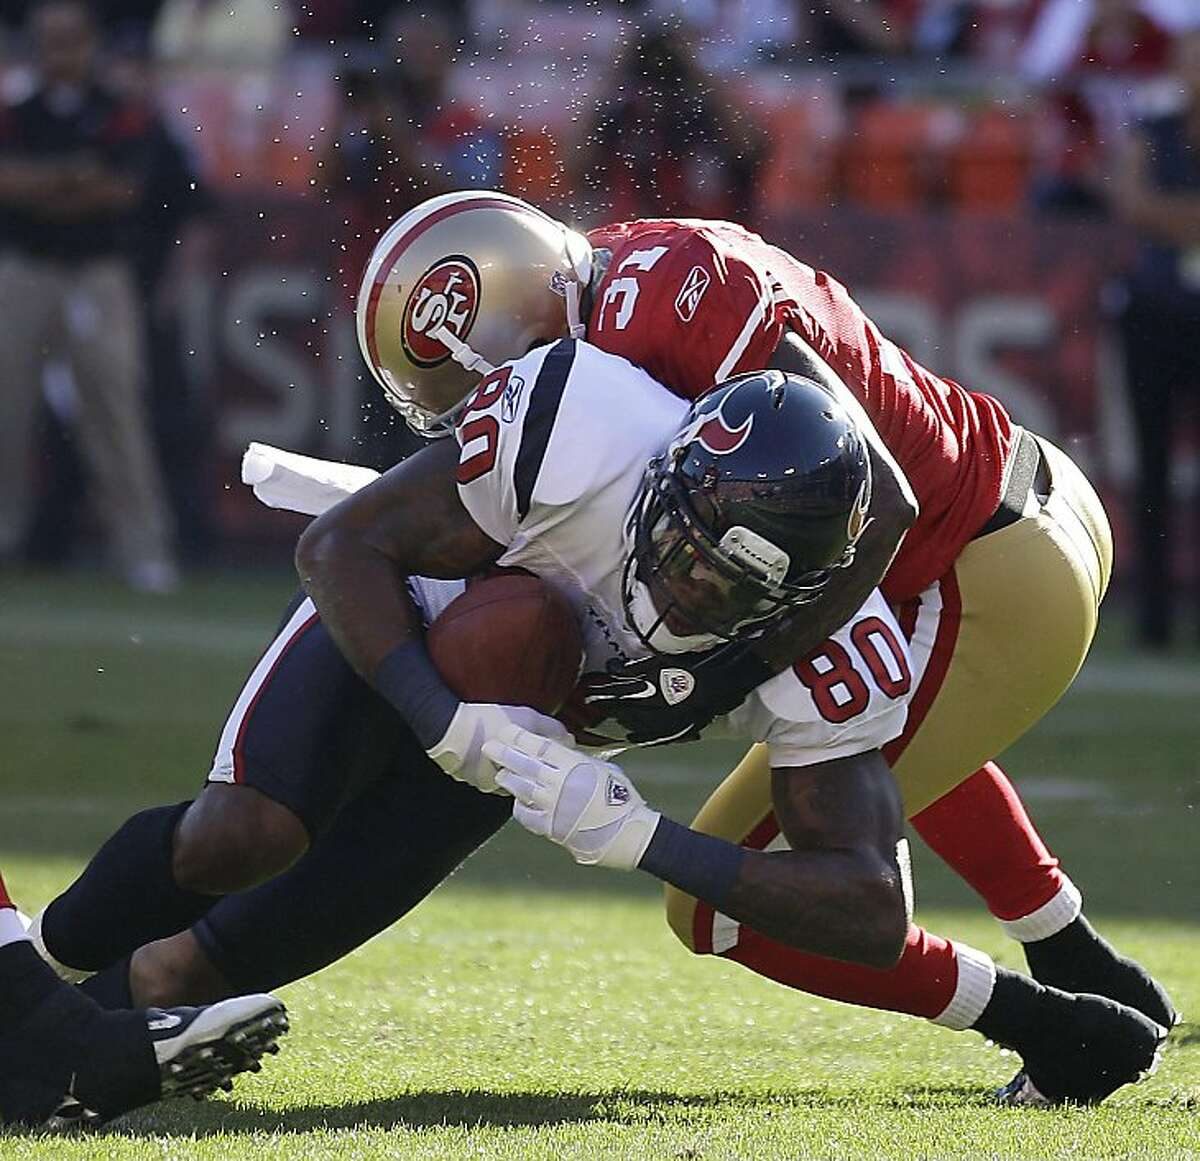 Houston Texans wide receiver Andre Johnson (80) is tackled by San Francisco 49ers safety Donte Whitner (31) in the first half of a preseason NFL football game in San Francisco, Saturday, Aug. 27, 2011. (AP Photo/Marcio Jose Sanchez)